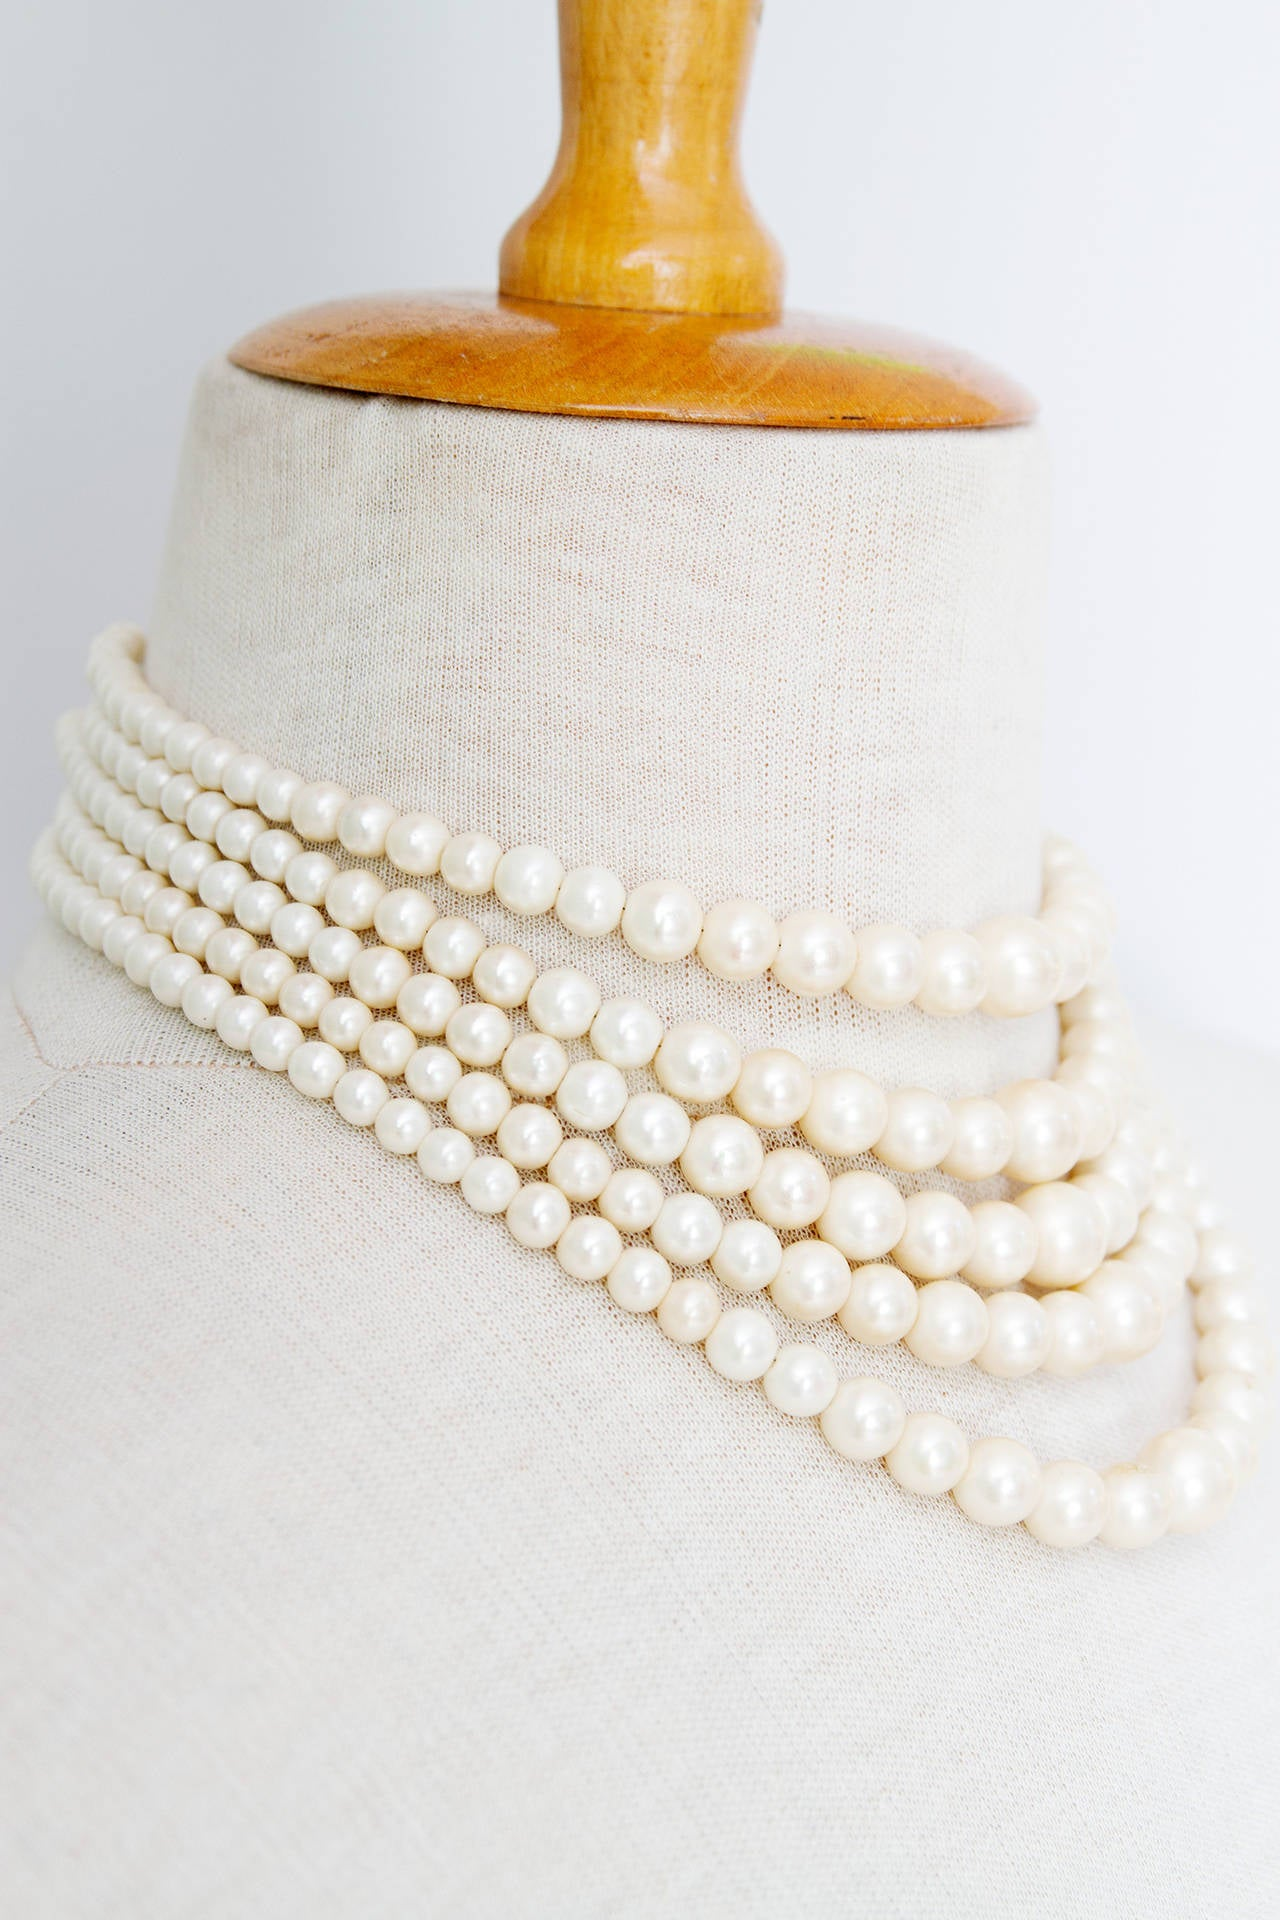 1960s Christian Dior Pearl Five Strand Choker Necklace In Excellent Condition For Sale In Copenhagen, DK